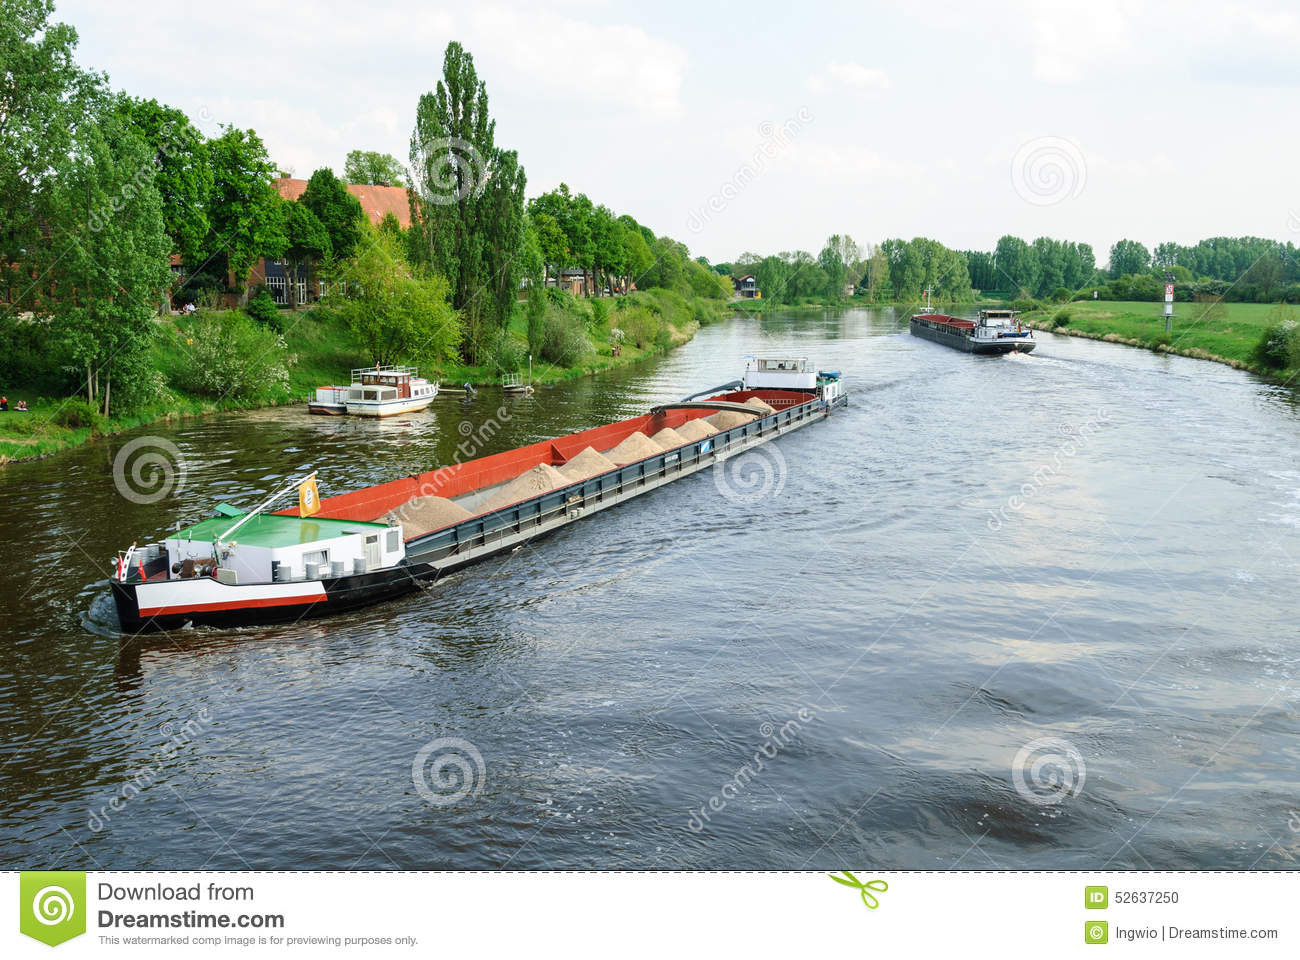 Cargo ships on a river